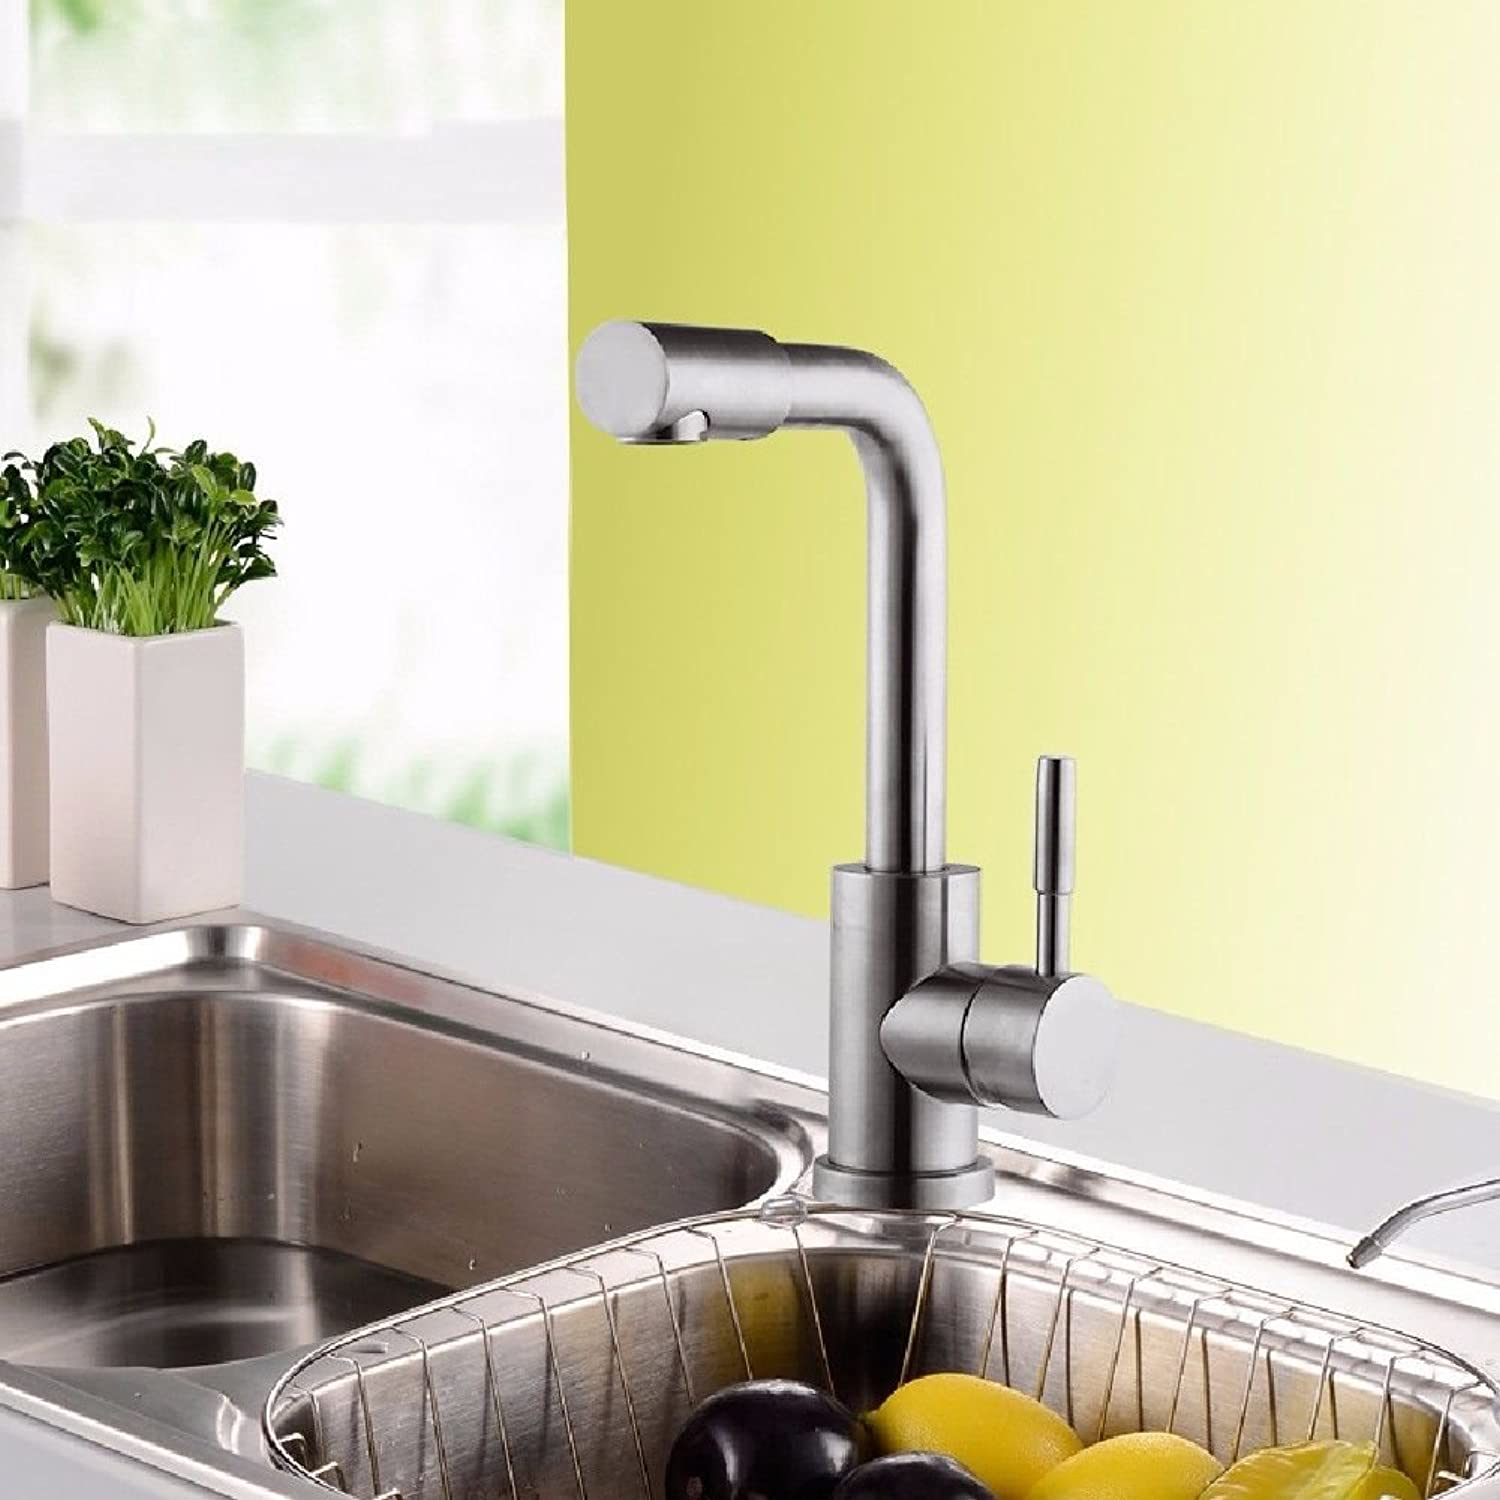 Commercial Single Lever Pull Down Kitchen Sink Faucet Brass Constructed Polished 304 Stainless Steel Faucet Kitchen Faucet